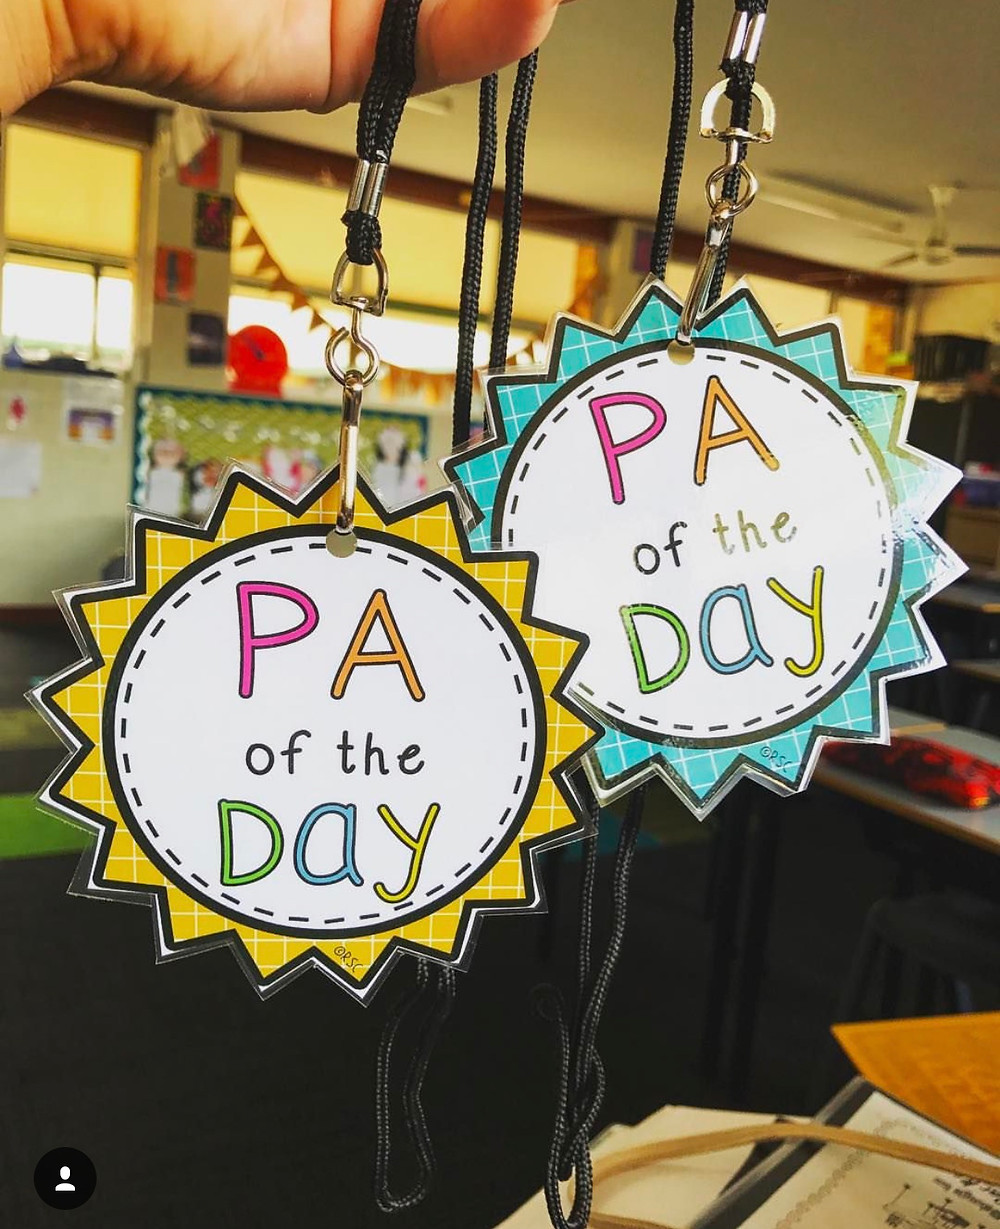 PA of the Day lanyards